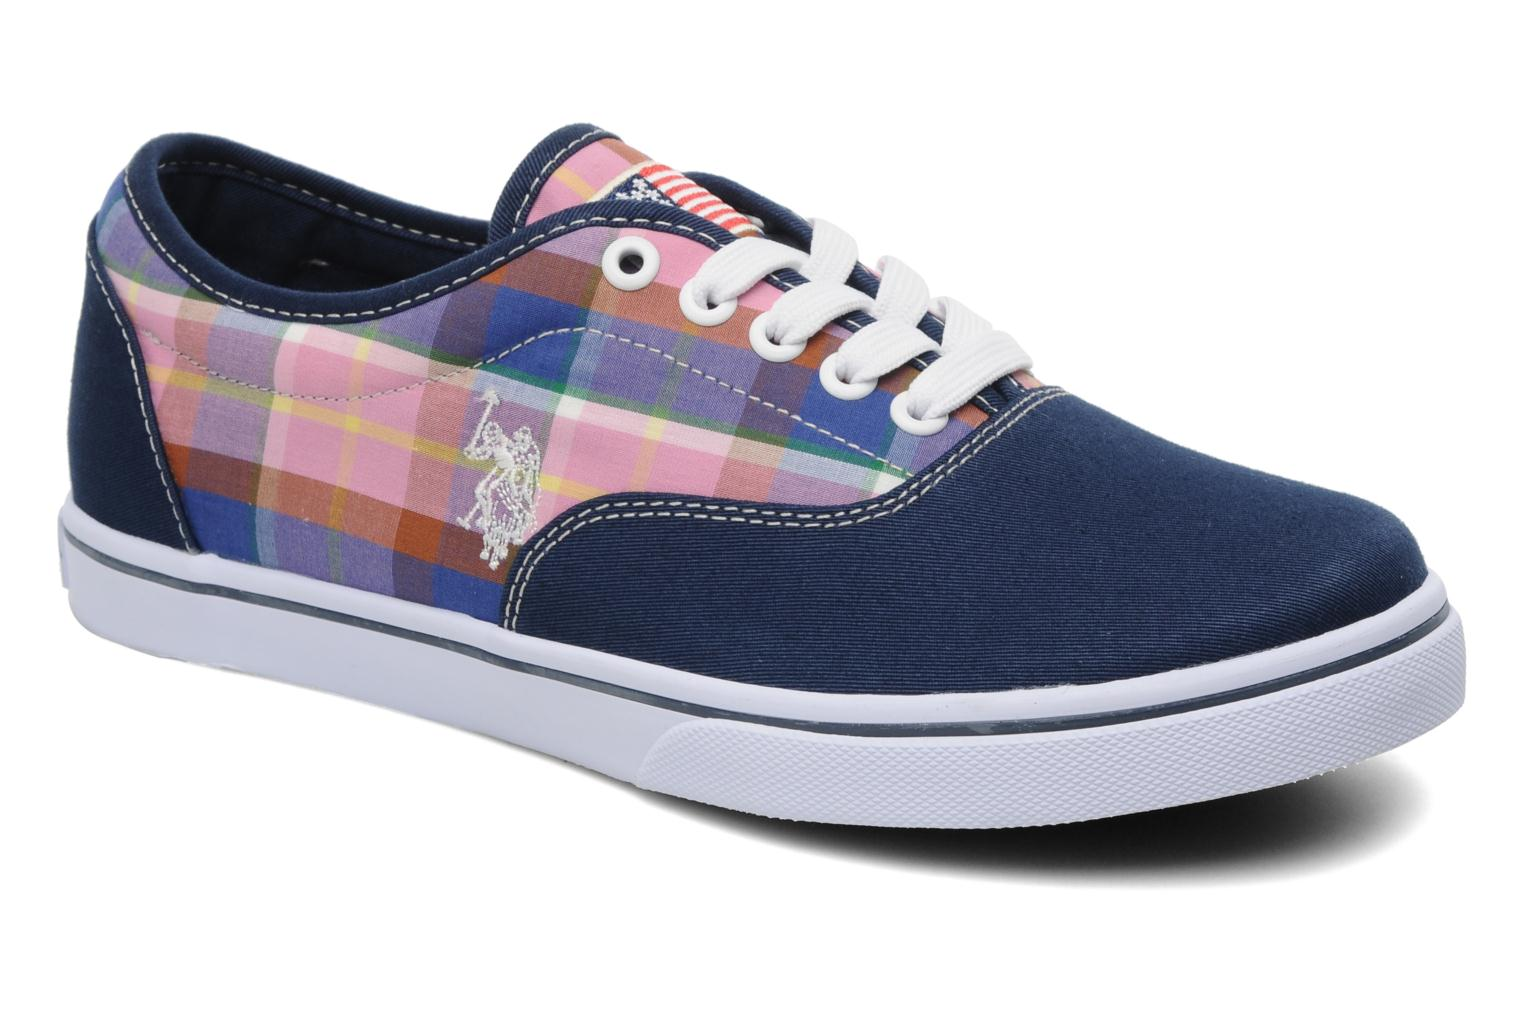 Sneakers Dominic Madras by U.S Polo Assn.